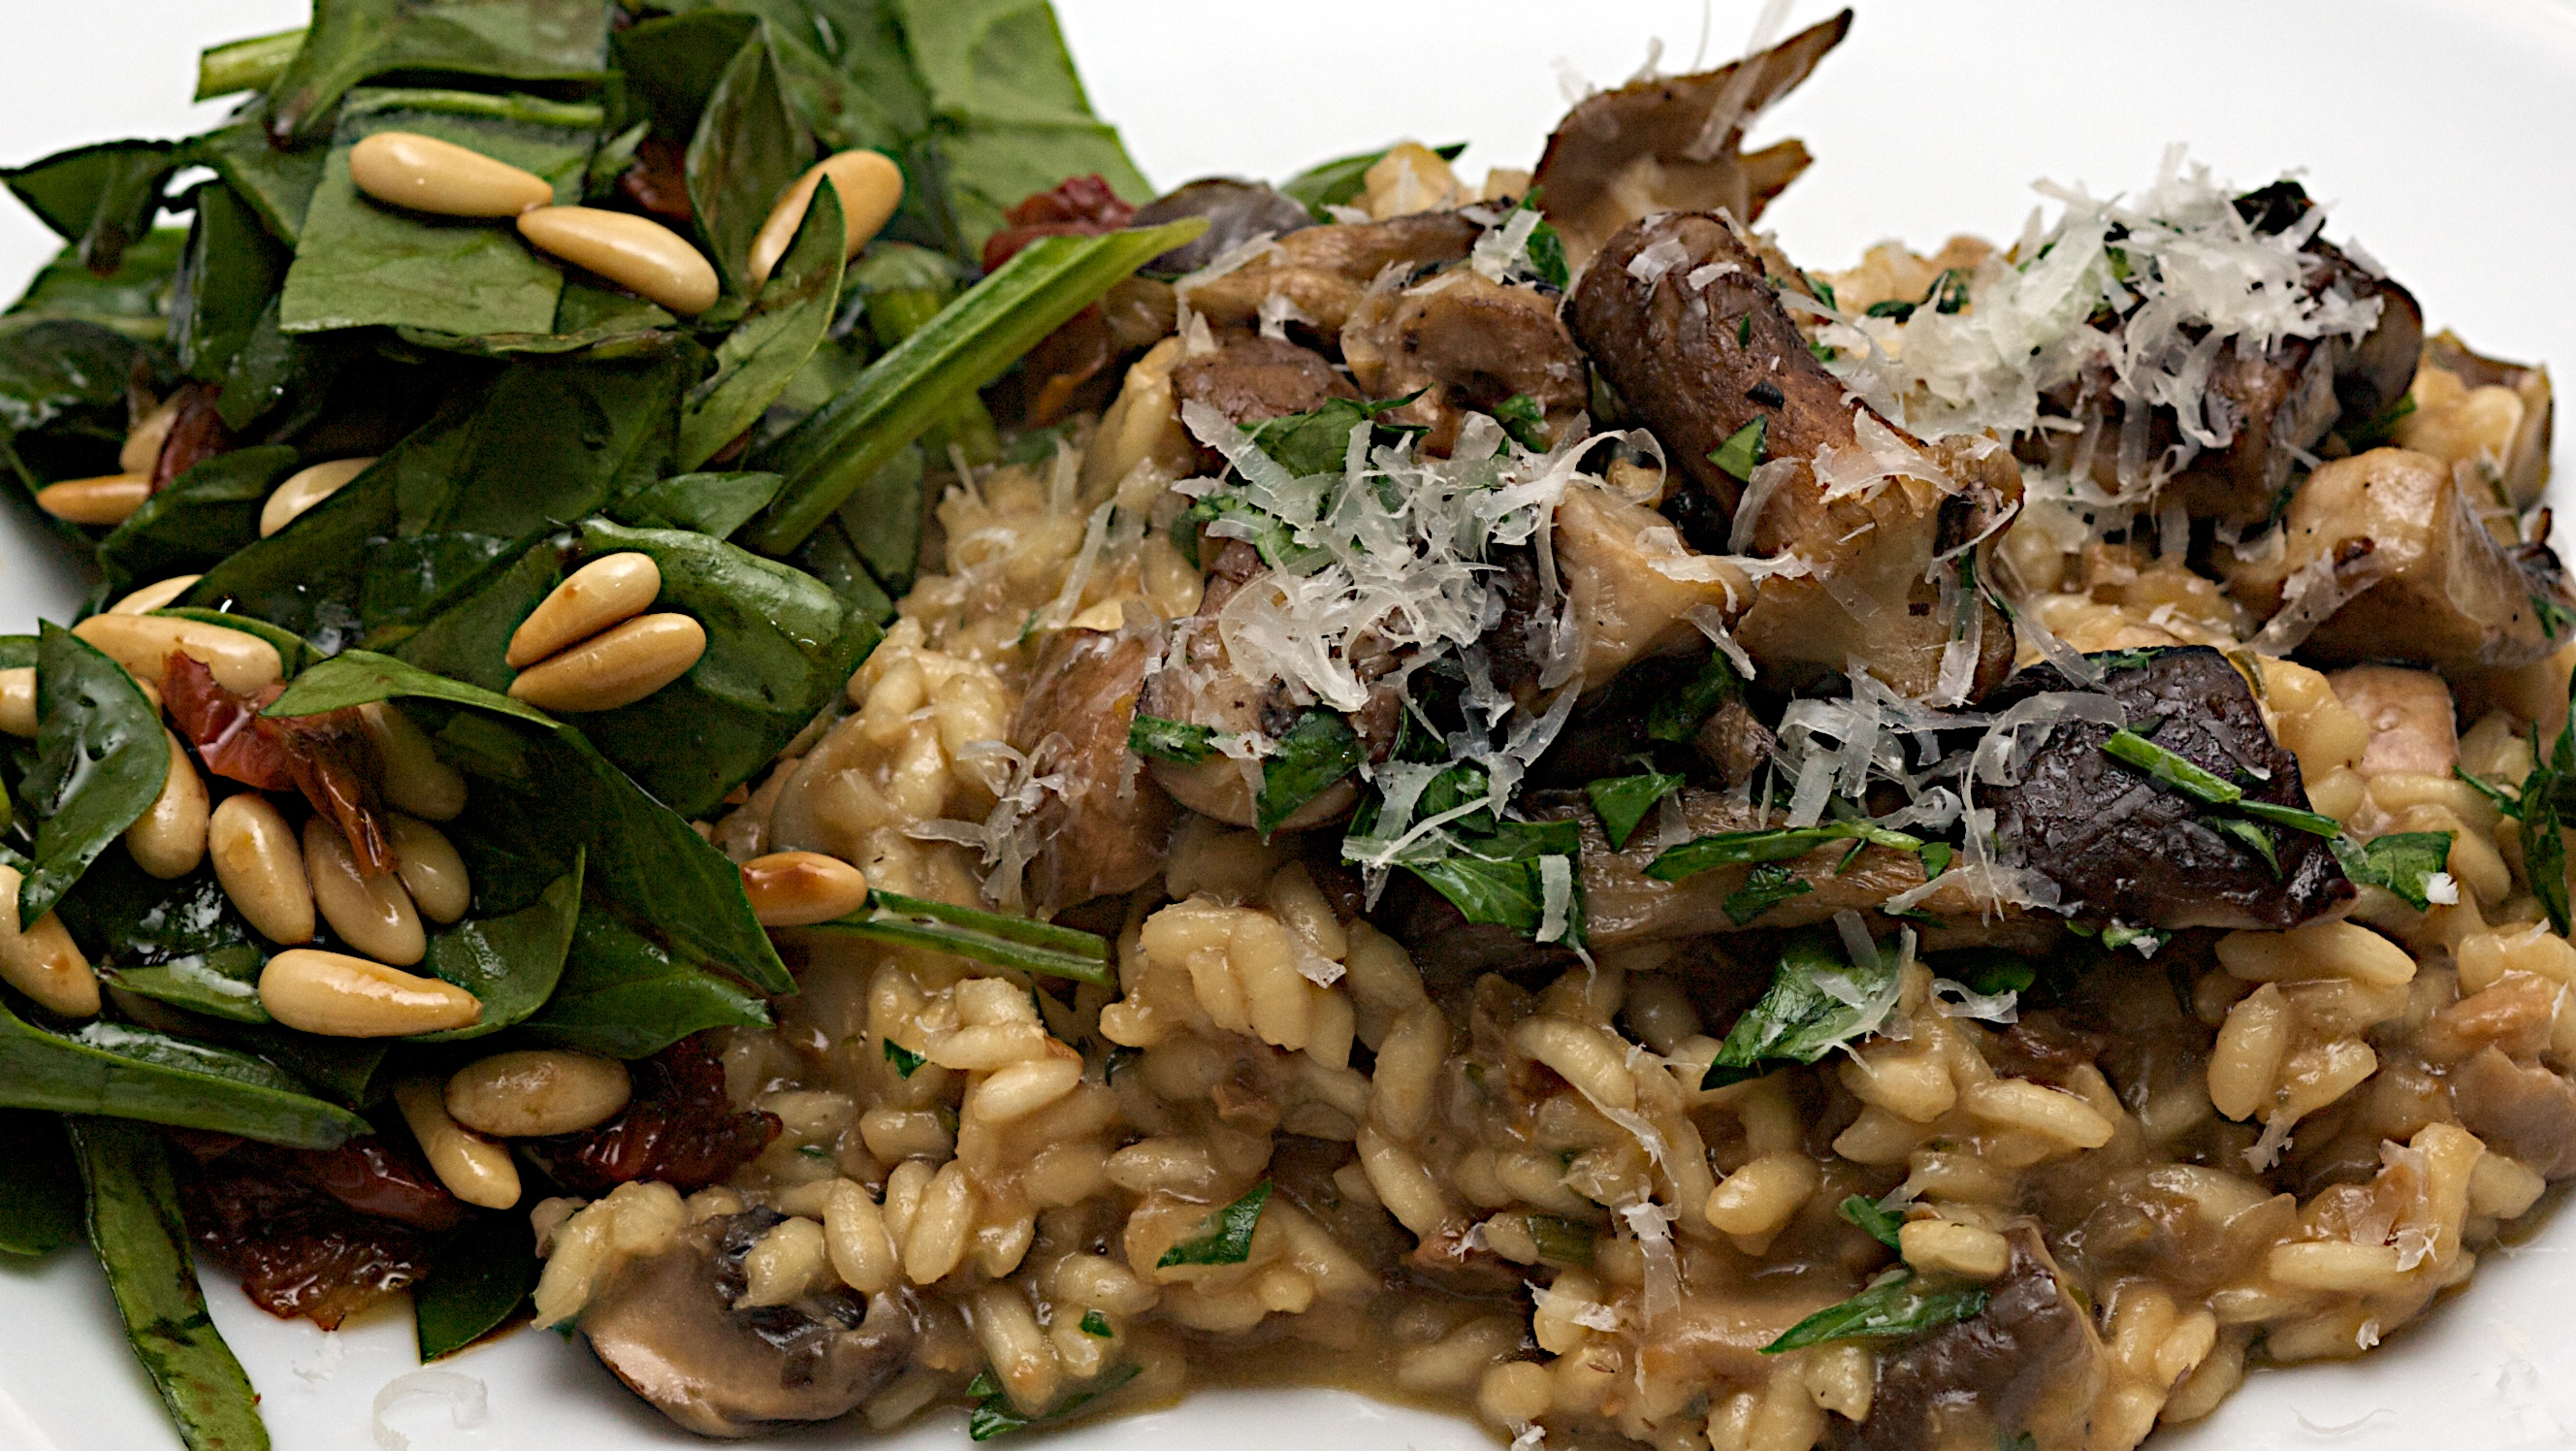 Jamie S 30 Minute Mushroom Risotto And Spinach Salad Jono Jules Do Food Wine